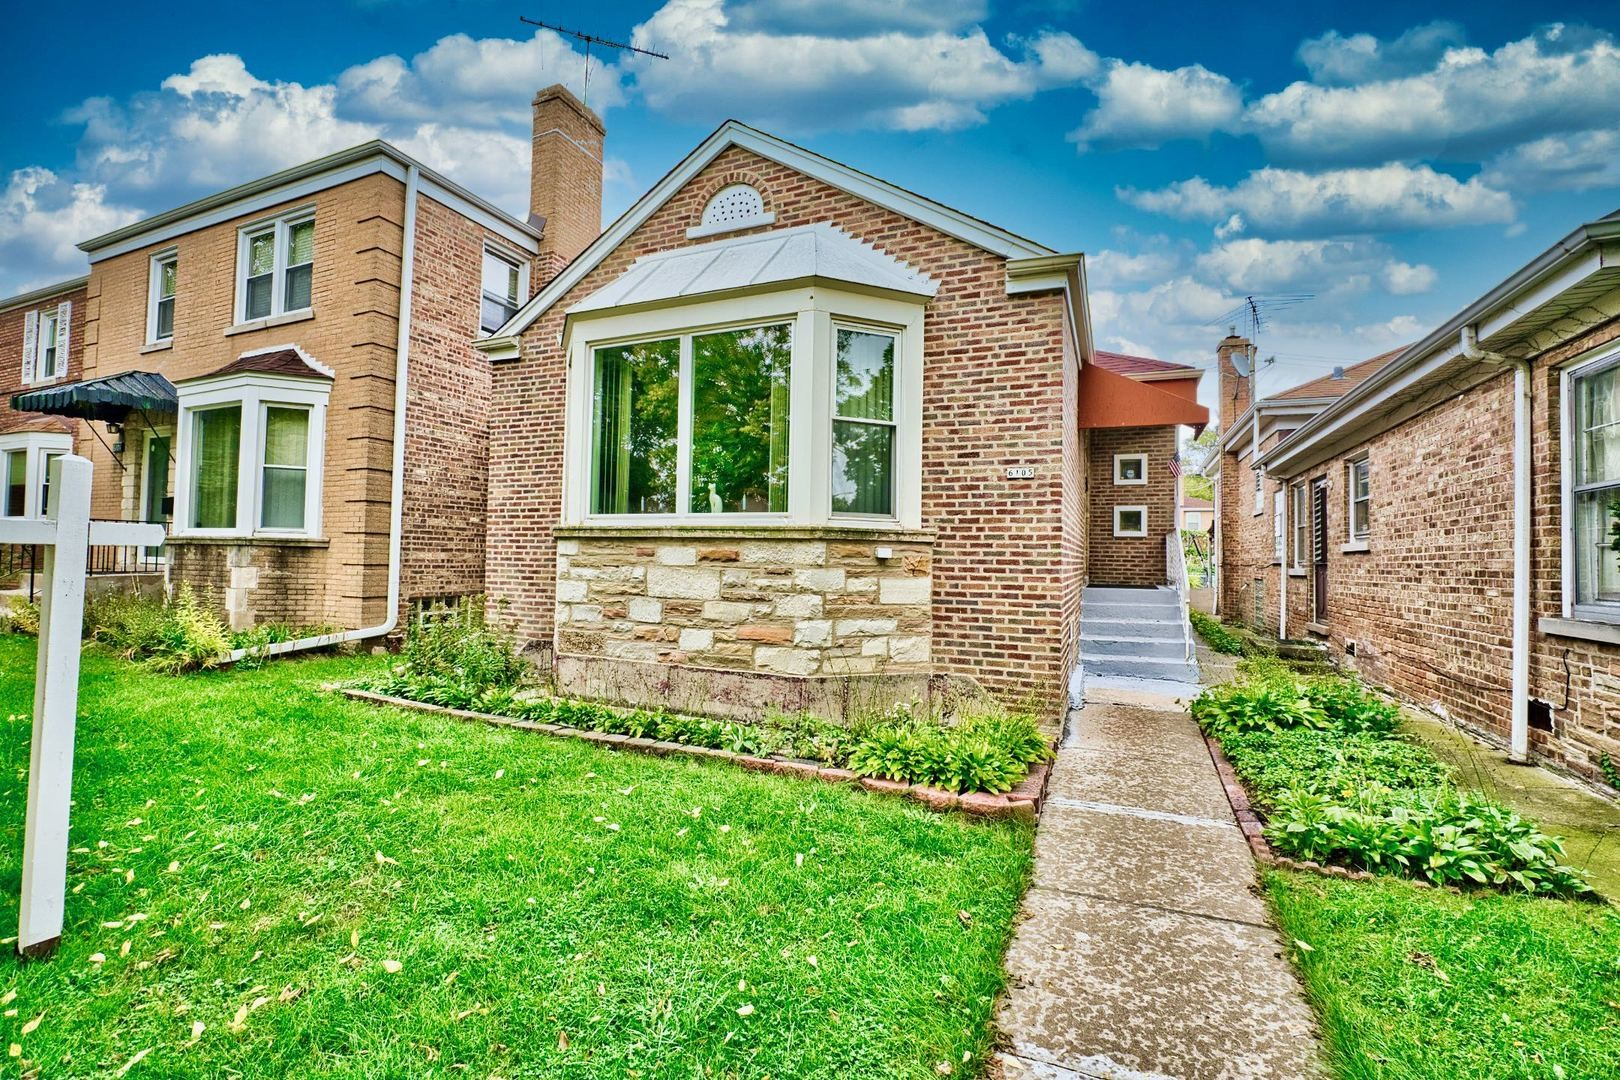 2-Bedroom House In North Park